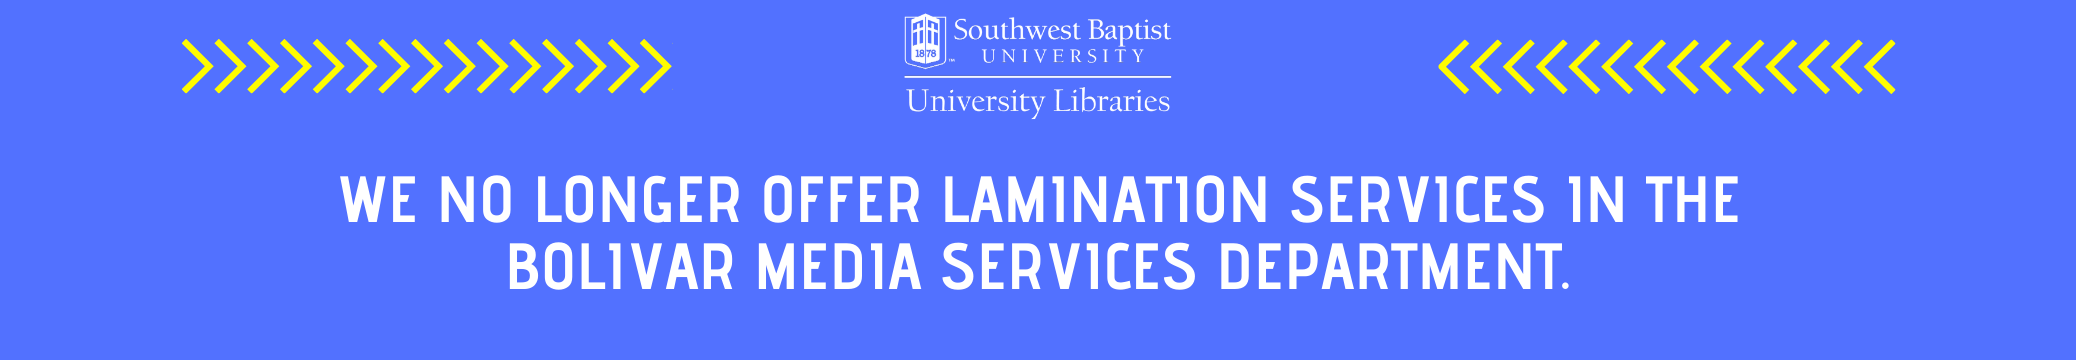 Media Services no longer has lamination services